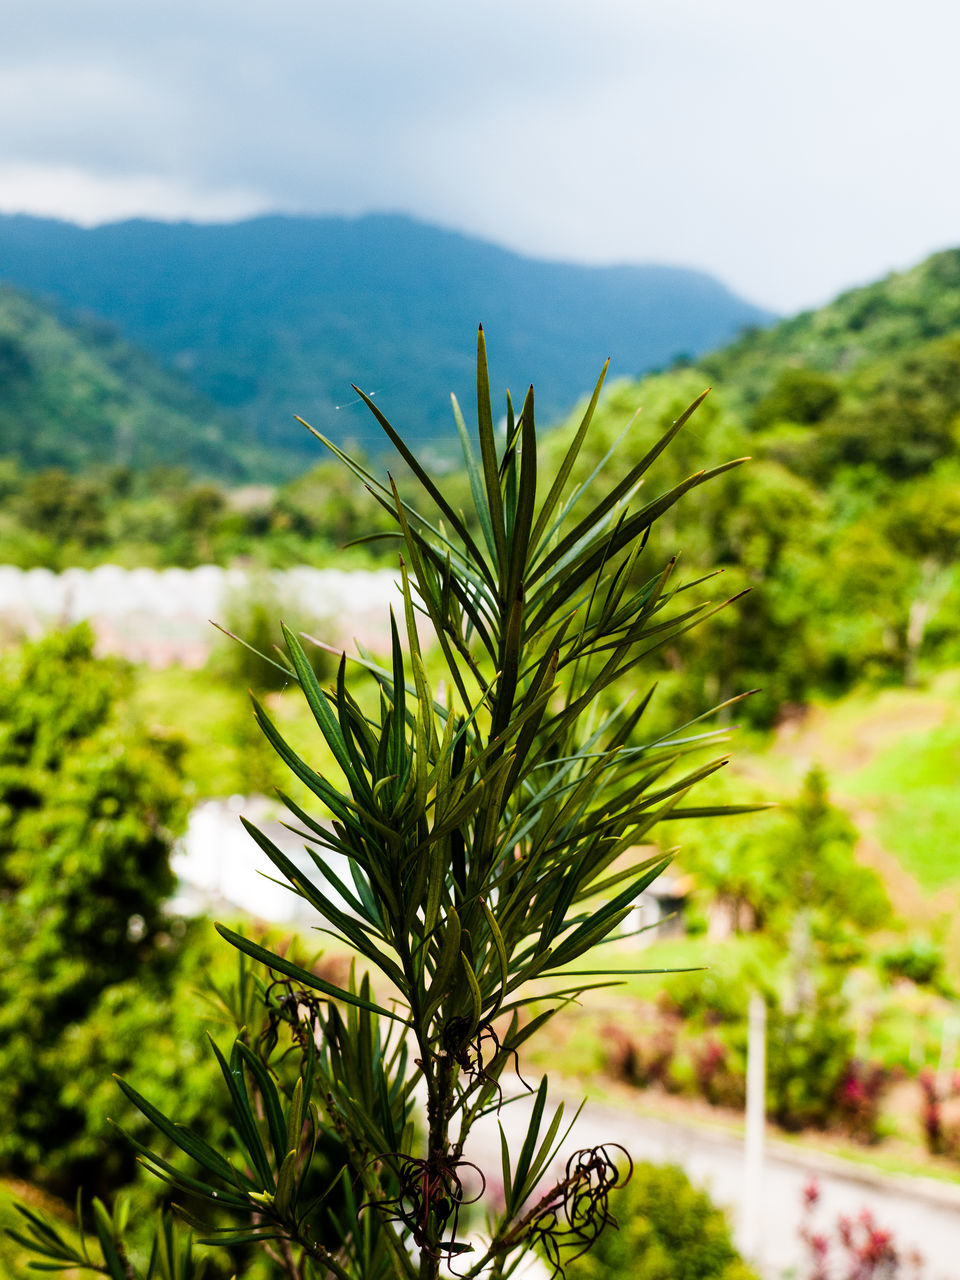 nature, growth, beauty in nature, plant, no people, tranquility, focus on foreground, green color, mountain, day, outdoors, tree, scenics, sky, close-up, freshness